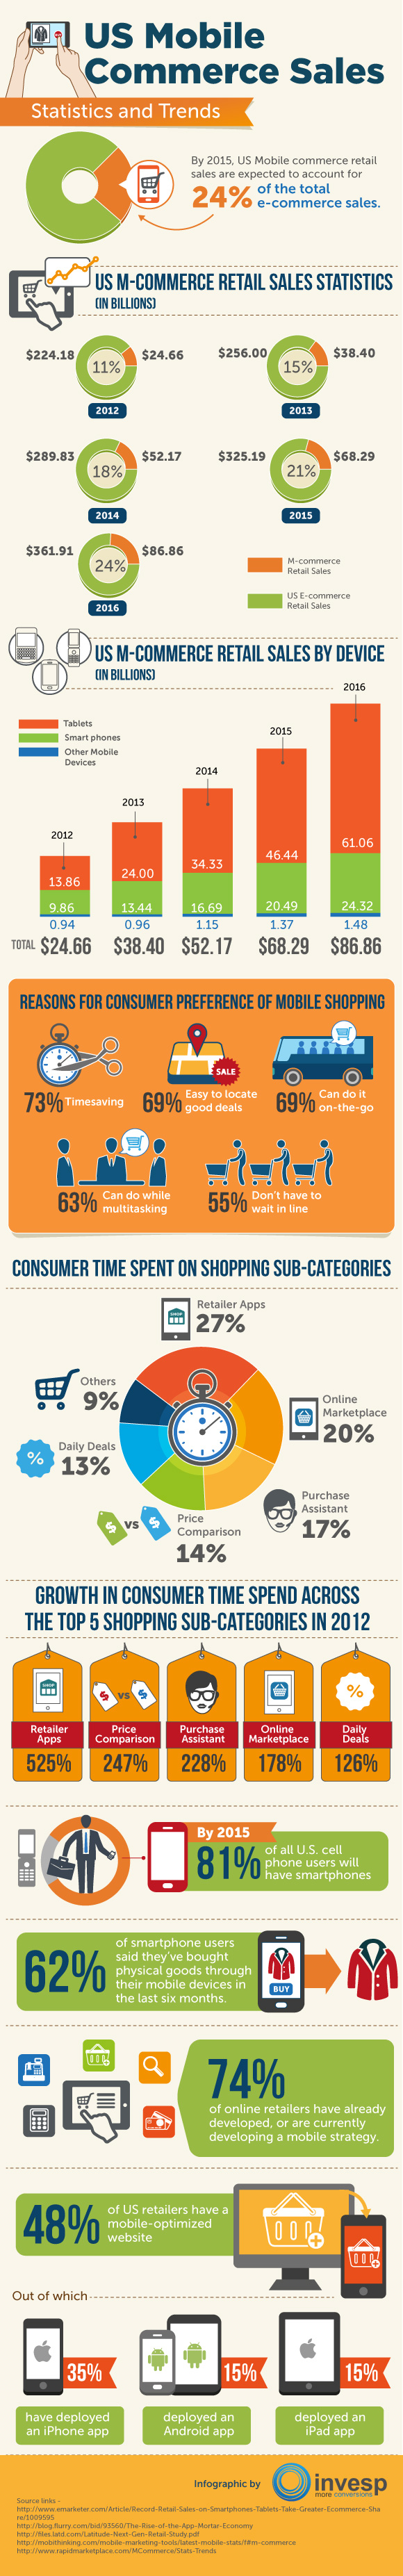 US Mobile Commerce Sales - Statistics and Trends